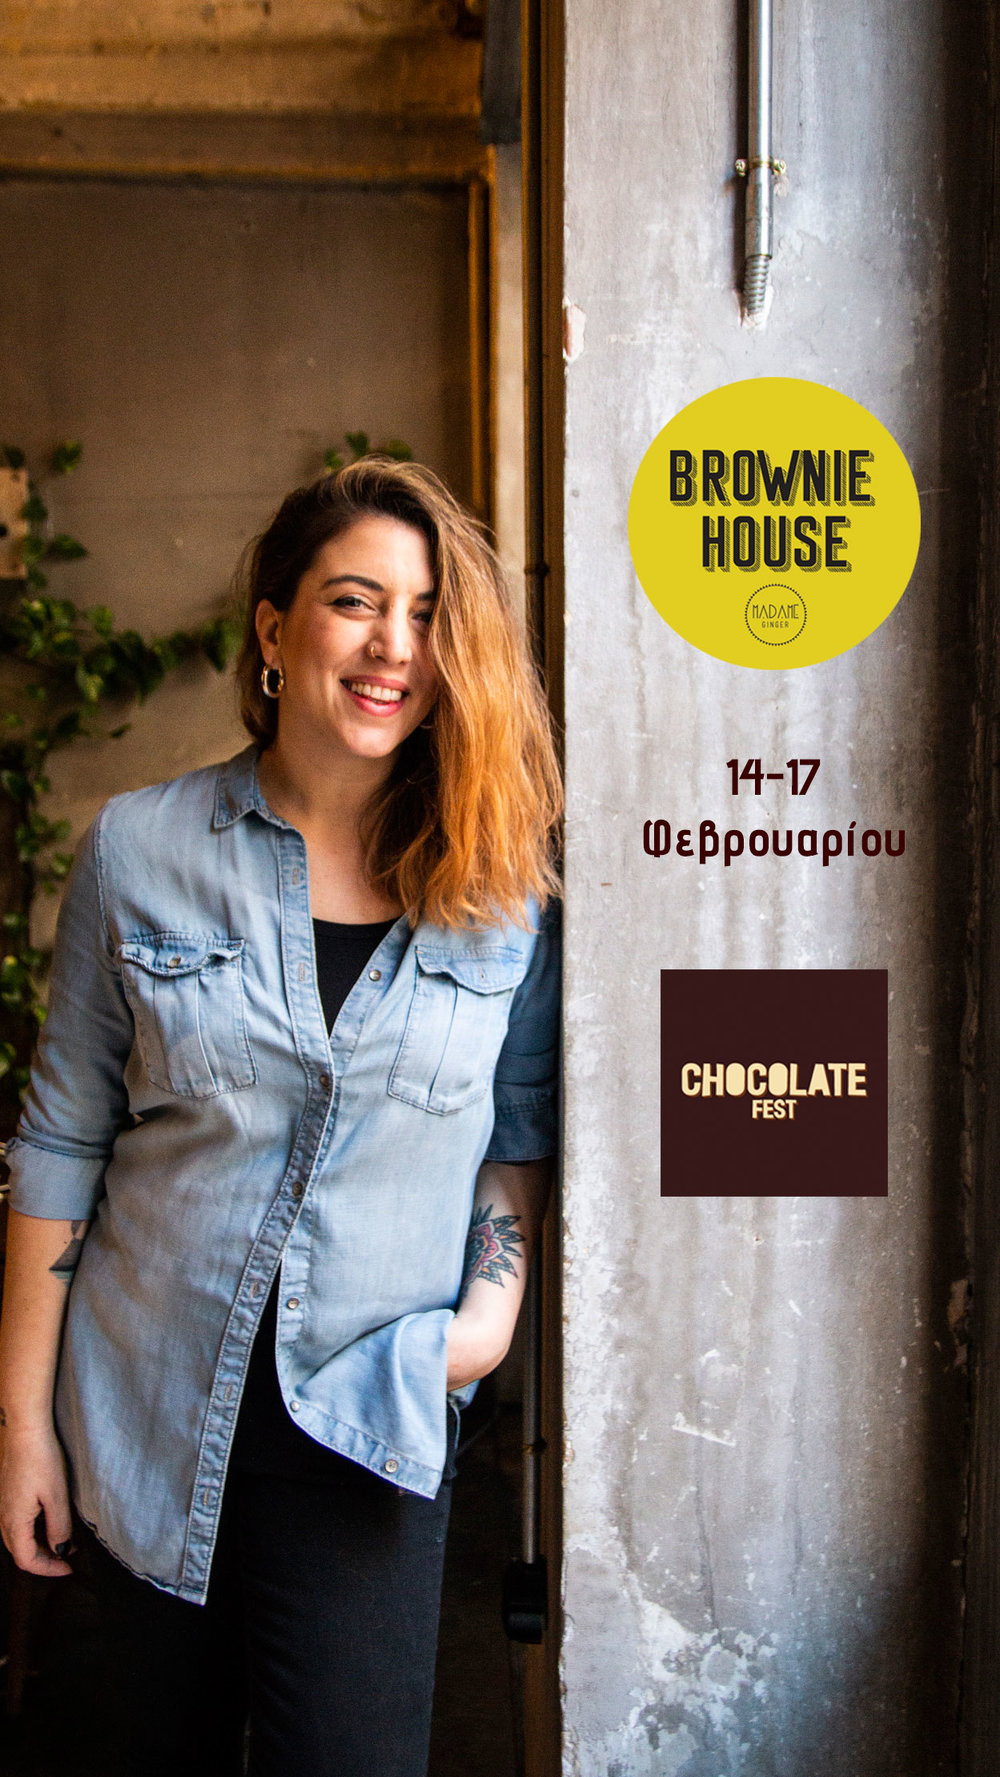 Brownie House - Madame Ginger - Insta Story.jpg